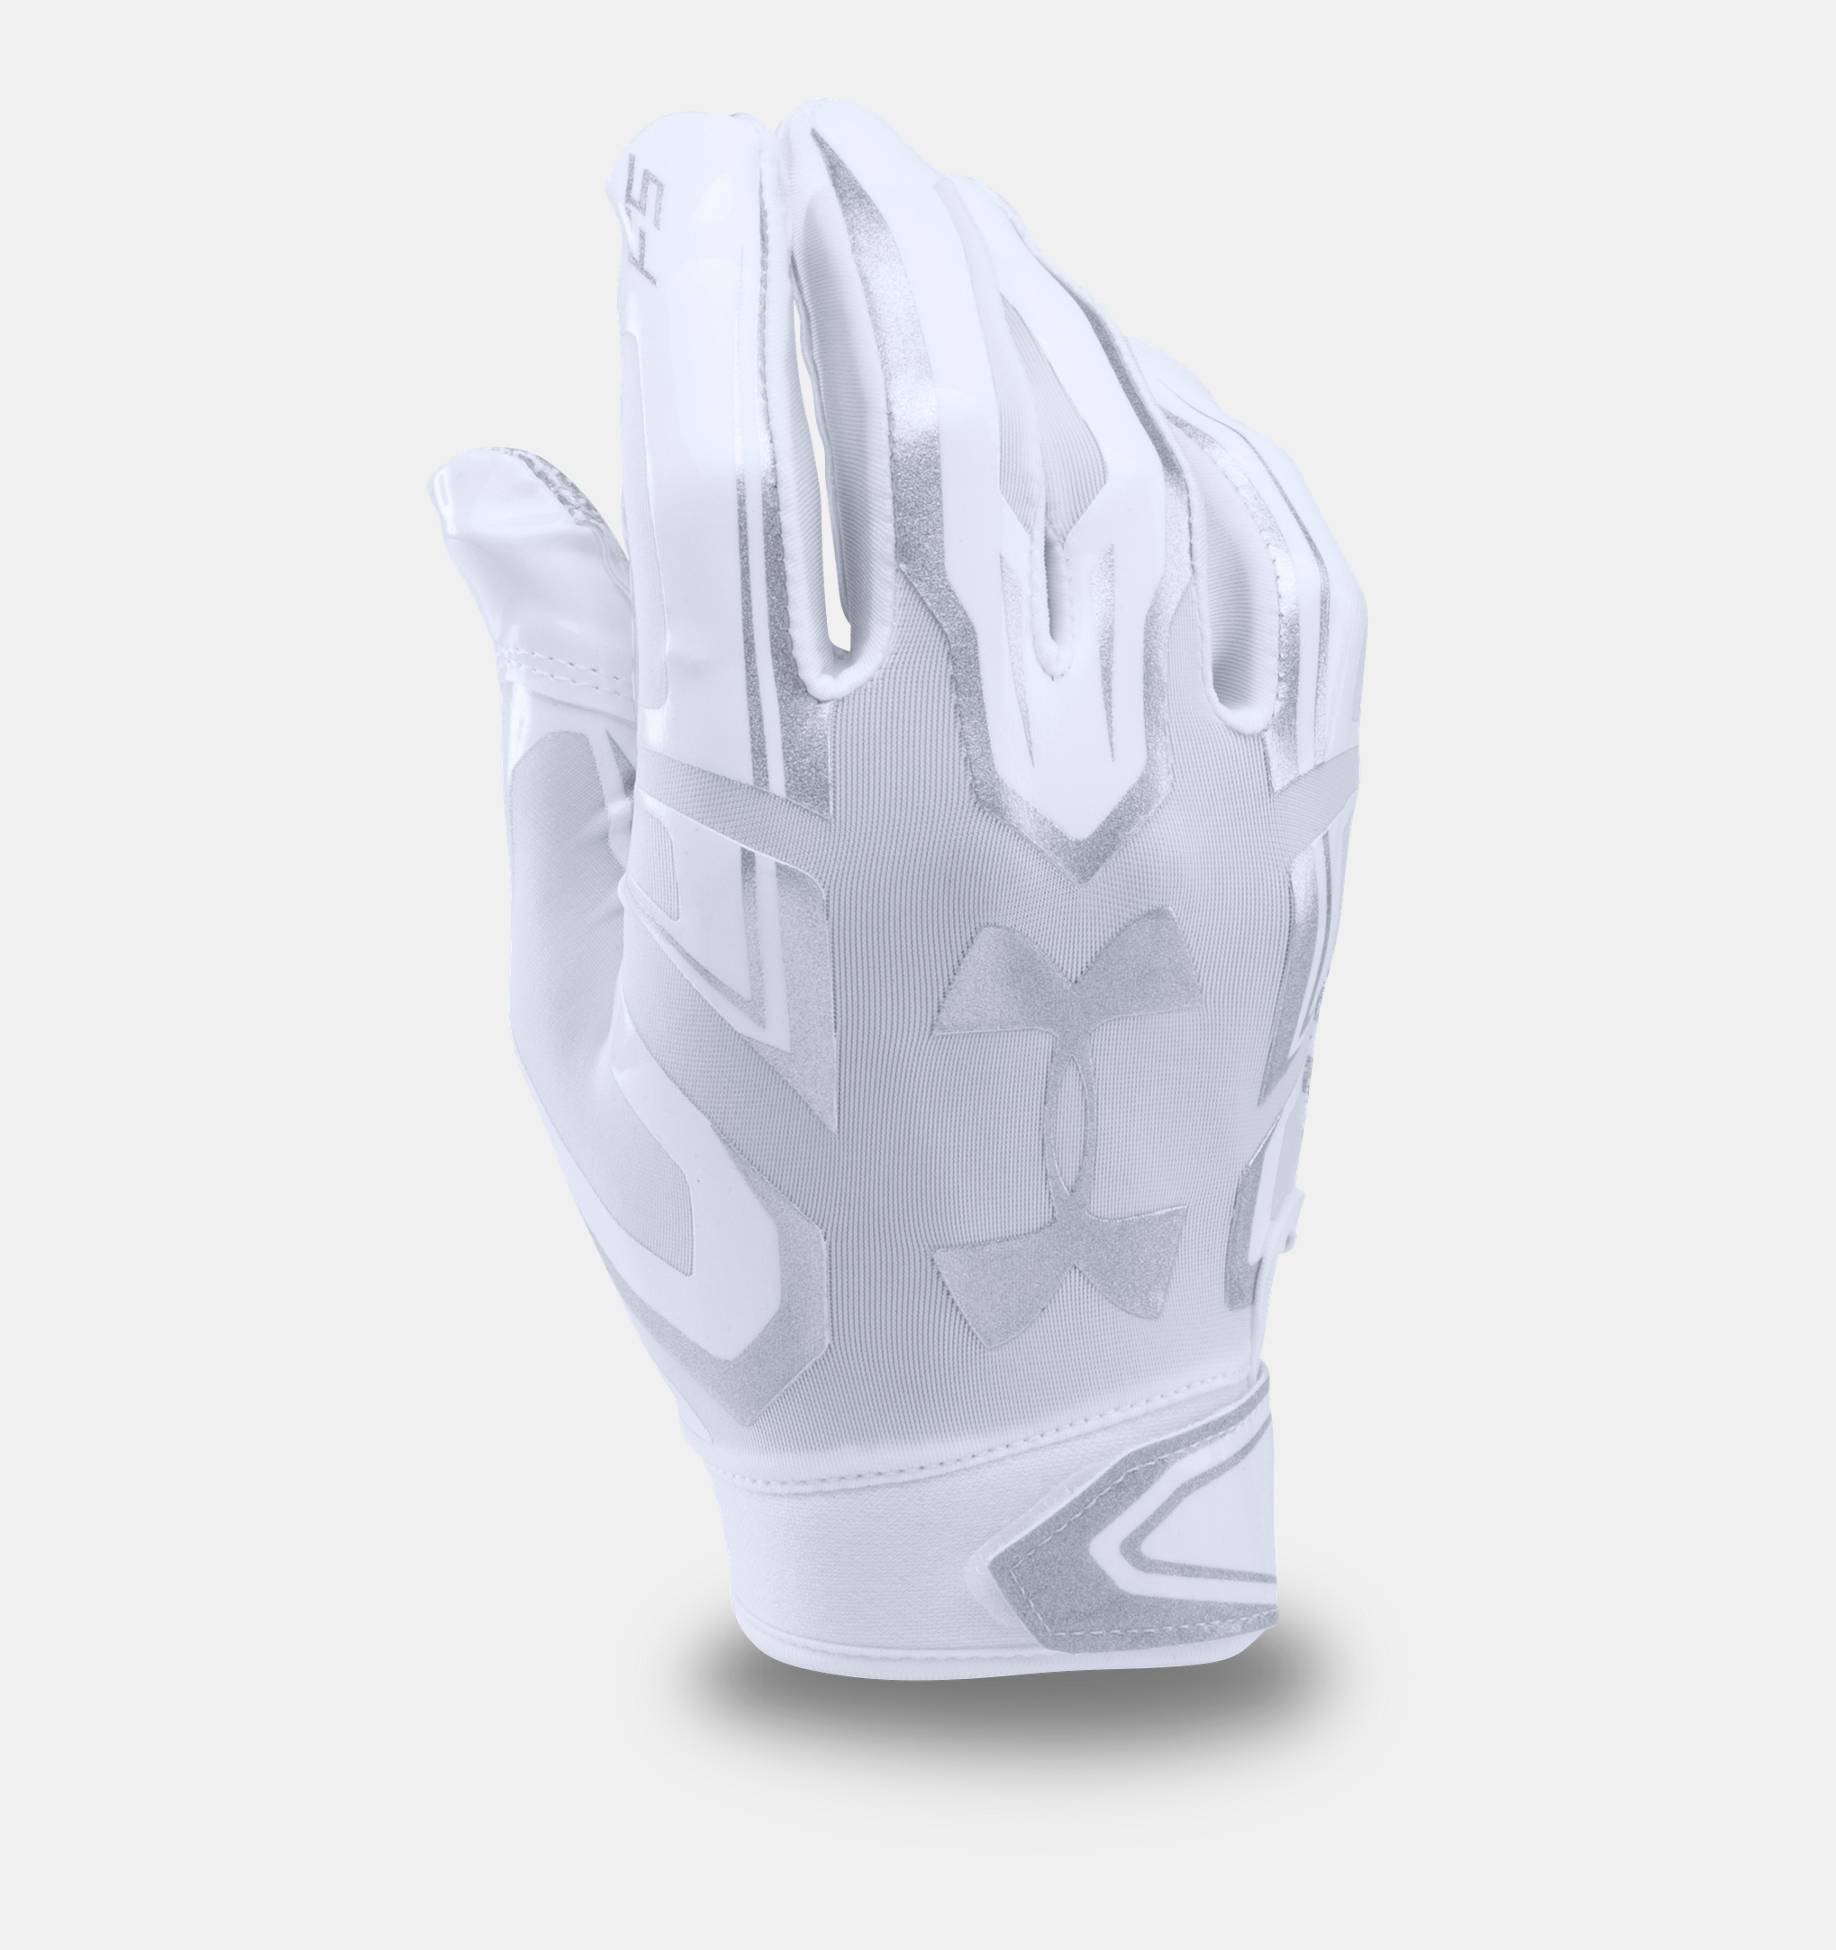 all white under armour football gloves